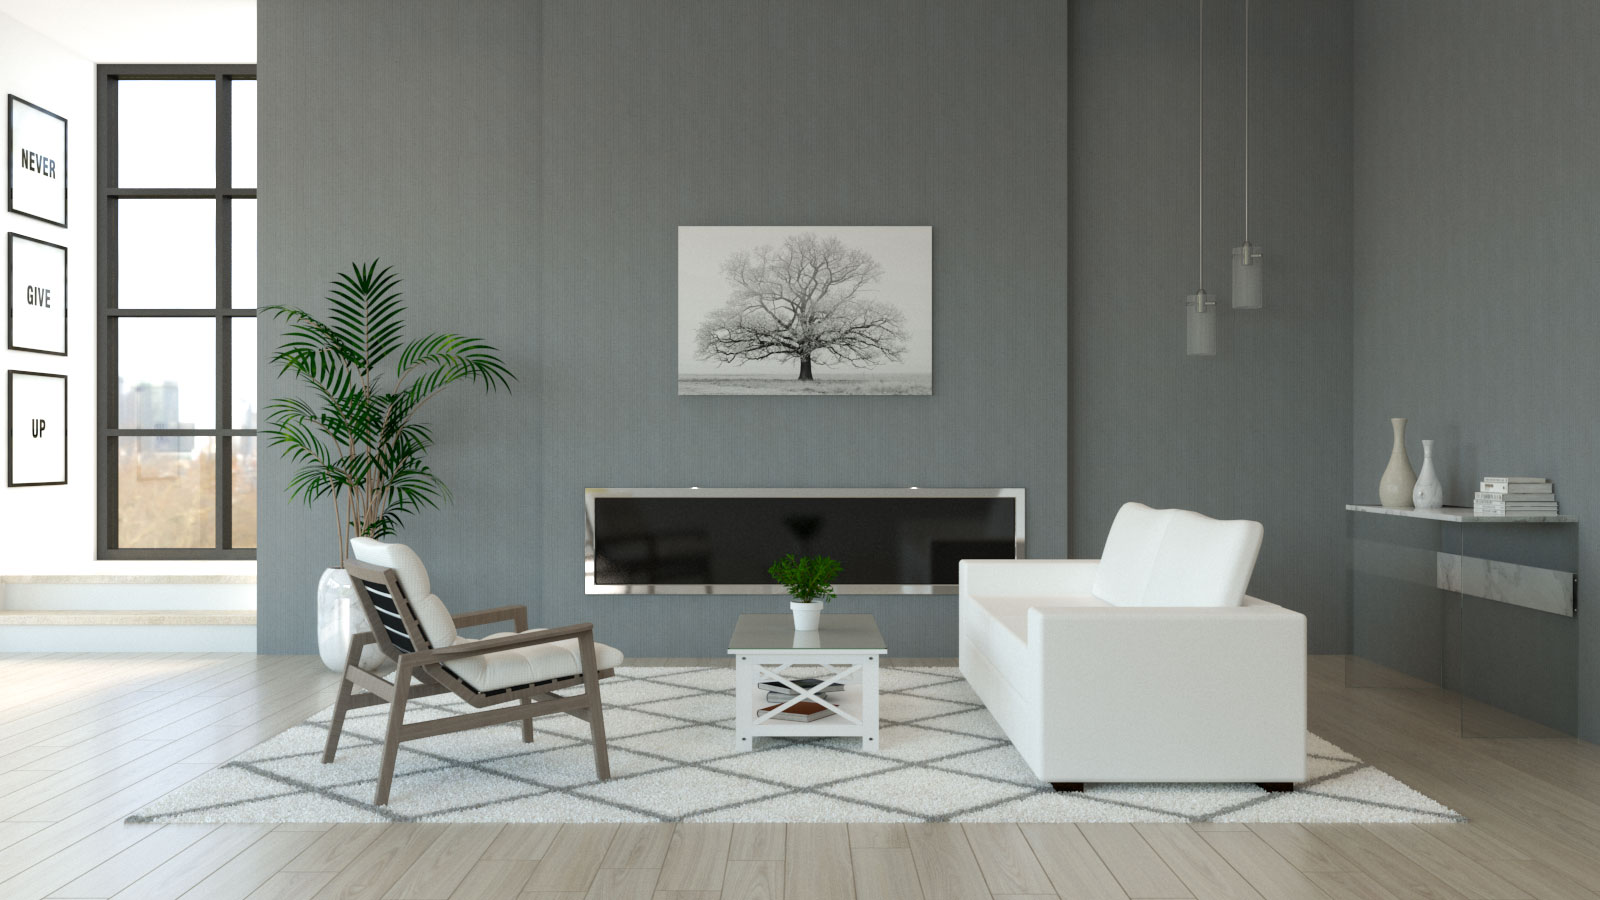 Living room with white furniture and gray walls